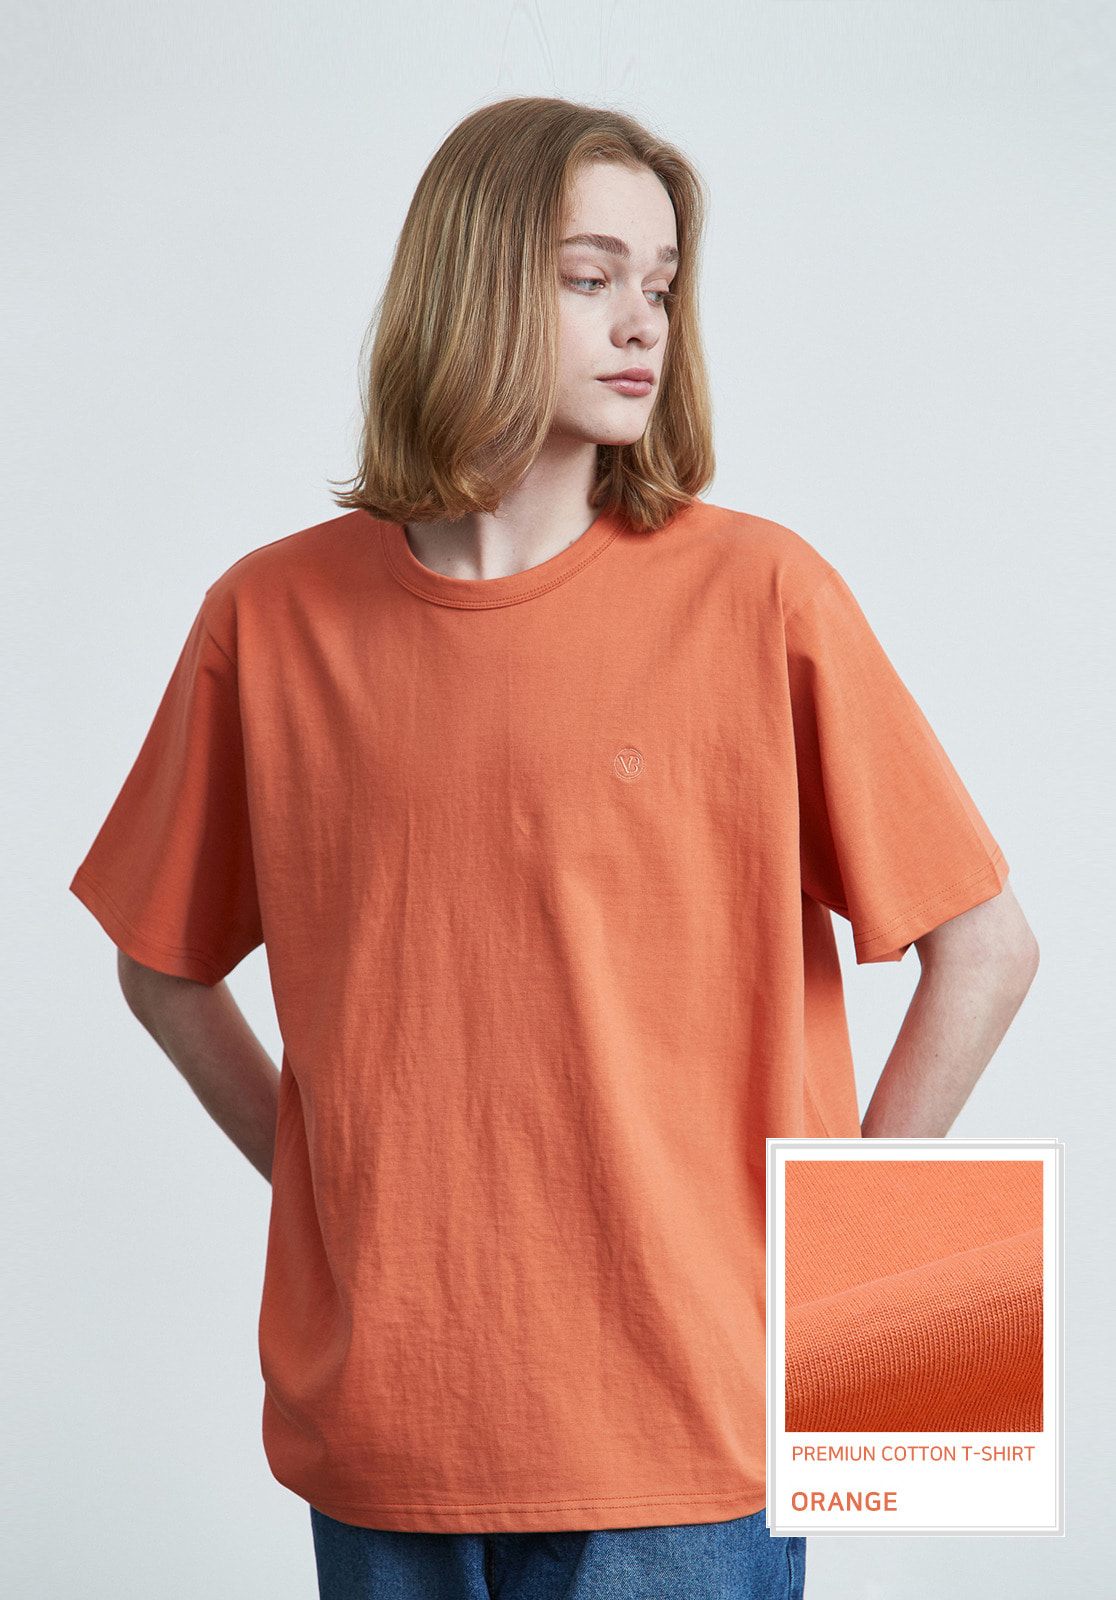 V017 PRIMIUM COTTON T-SHIRTS  ORANGE